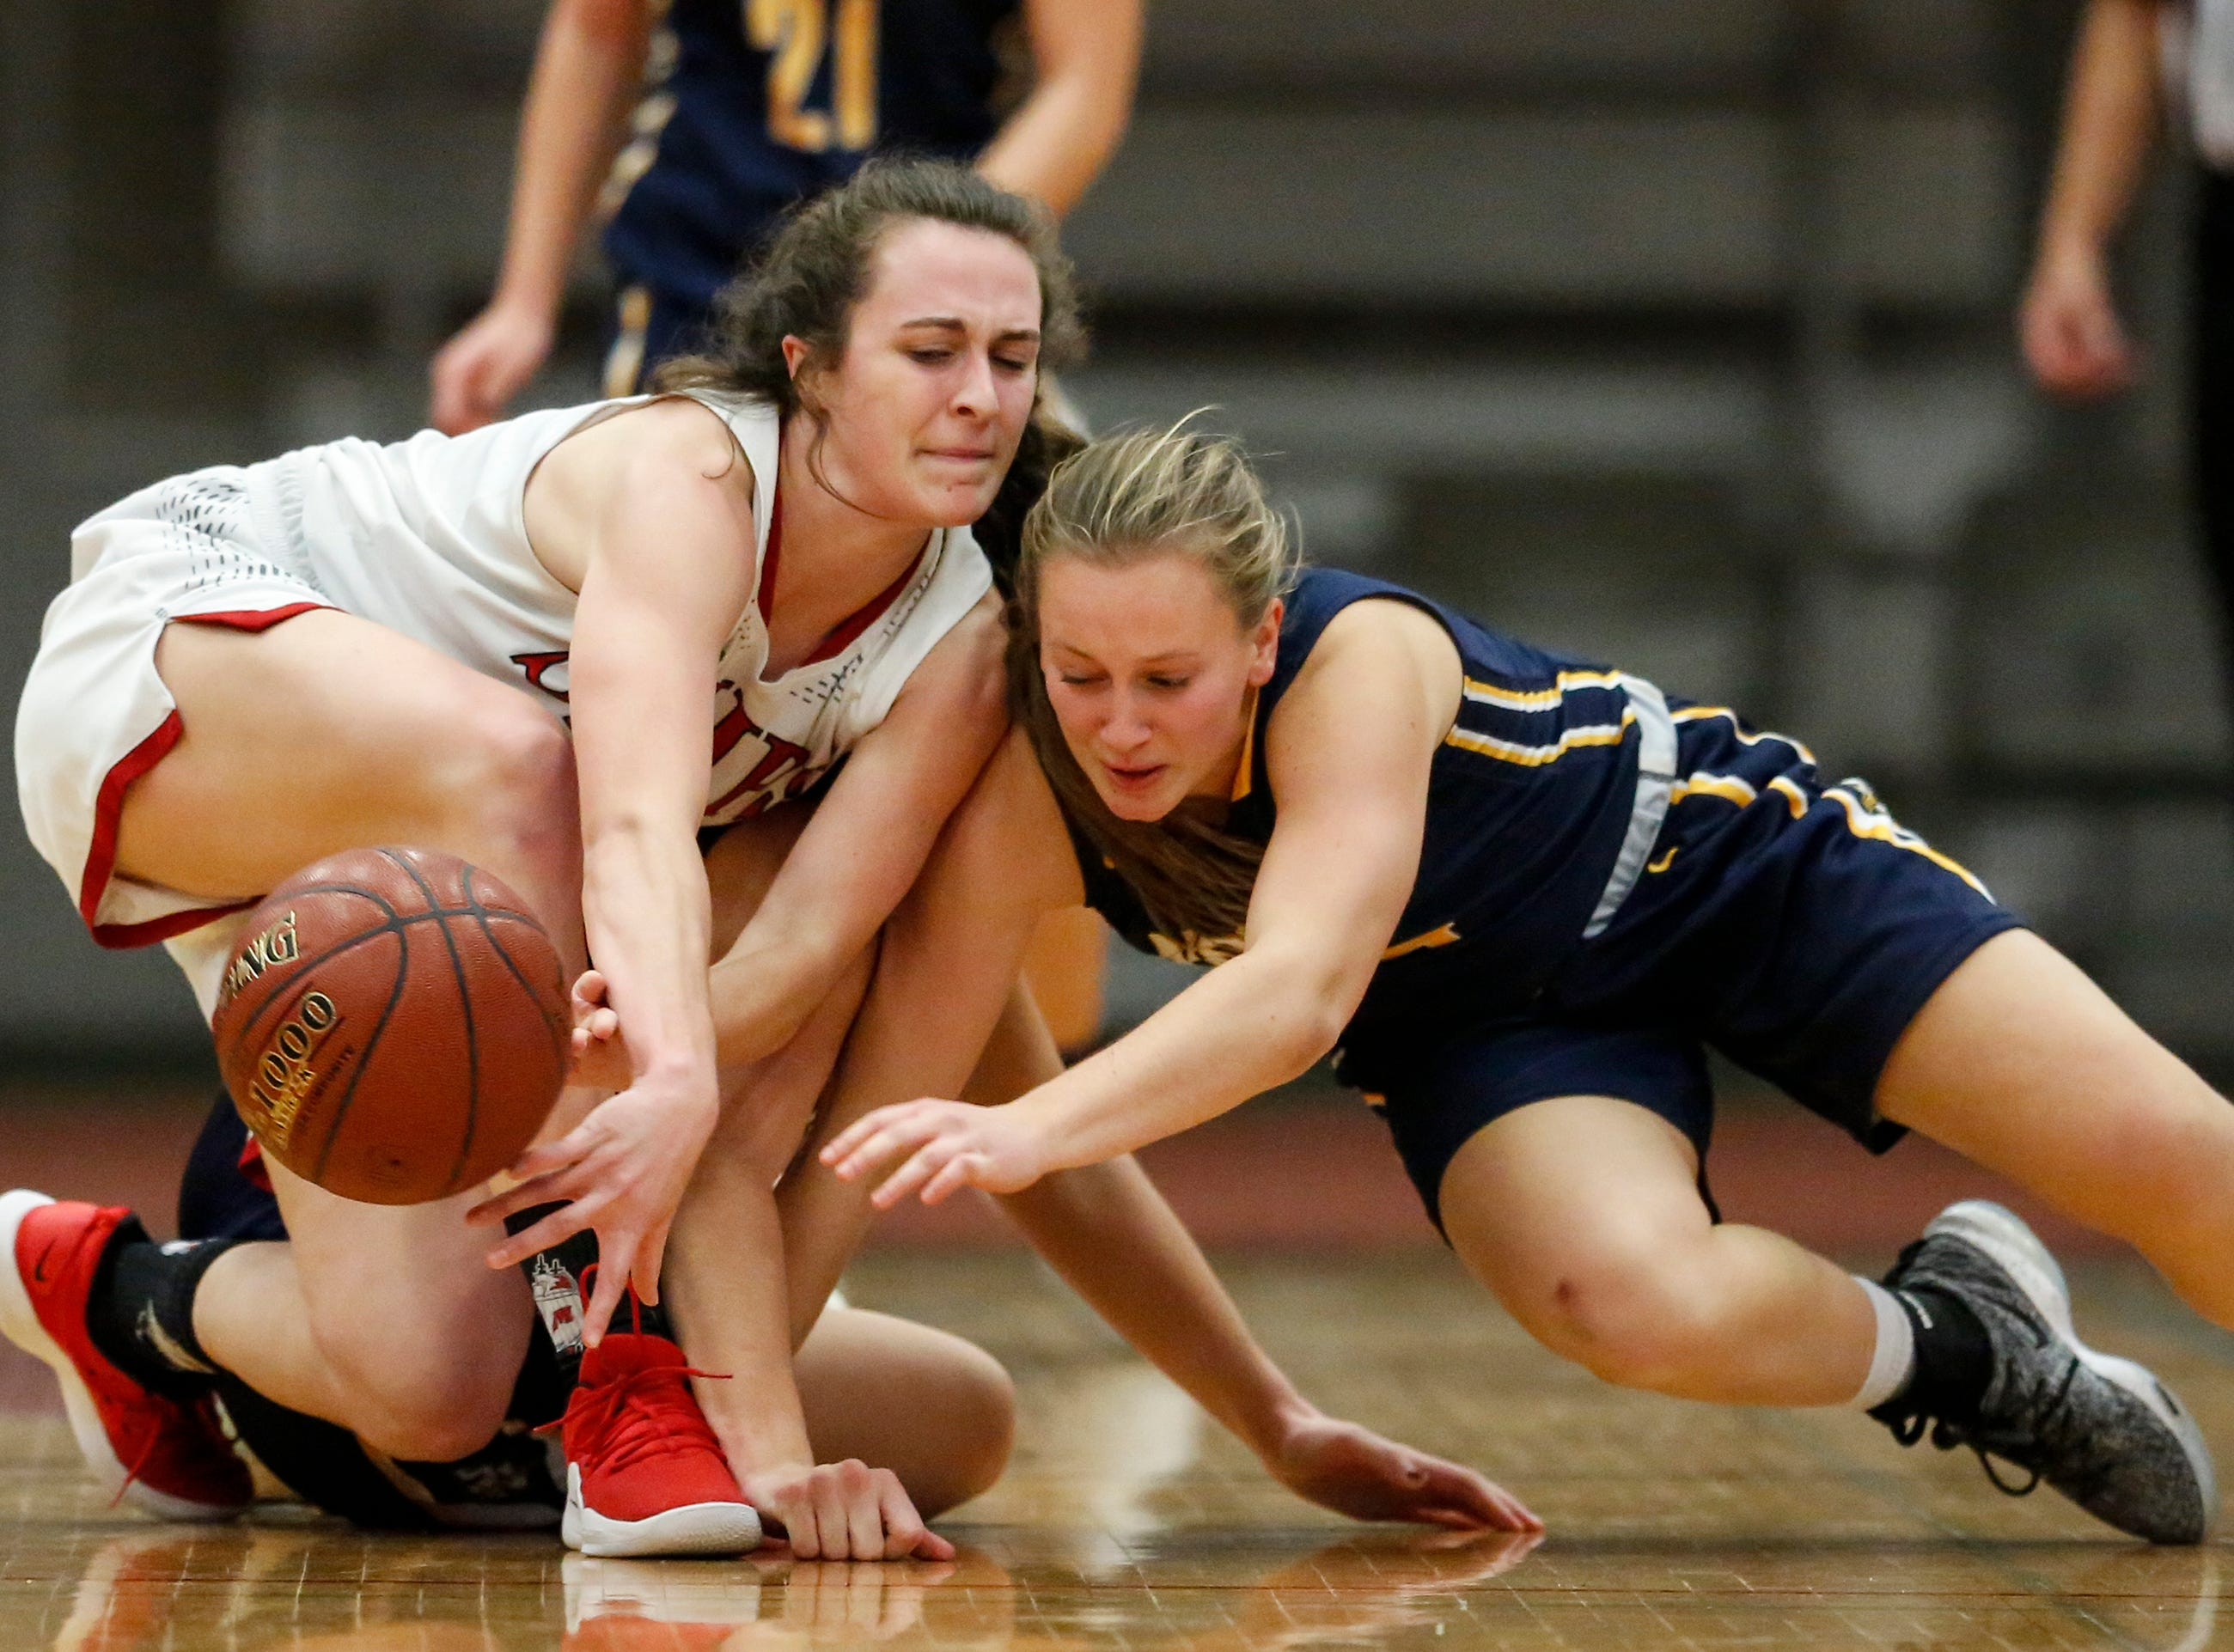 Manitowoc Lincoln's Ava Swoboda battles Sheboygan North's Julia Scharinger for a loose ball during a Fox River Classic Conference game at Manitowoc Lincoln High School Friday, December 14, 2018, in Manitowoc, Wis. Joshua Clark/USA TODAY NETWORK-Wisconsin